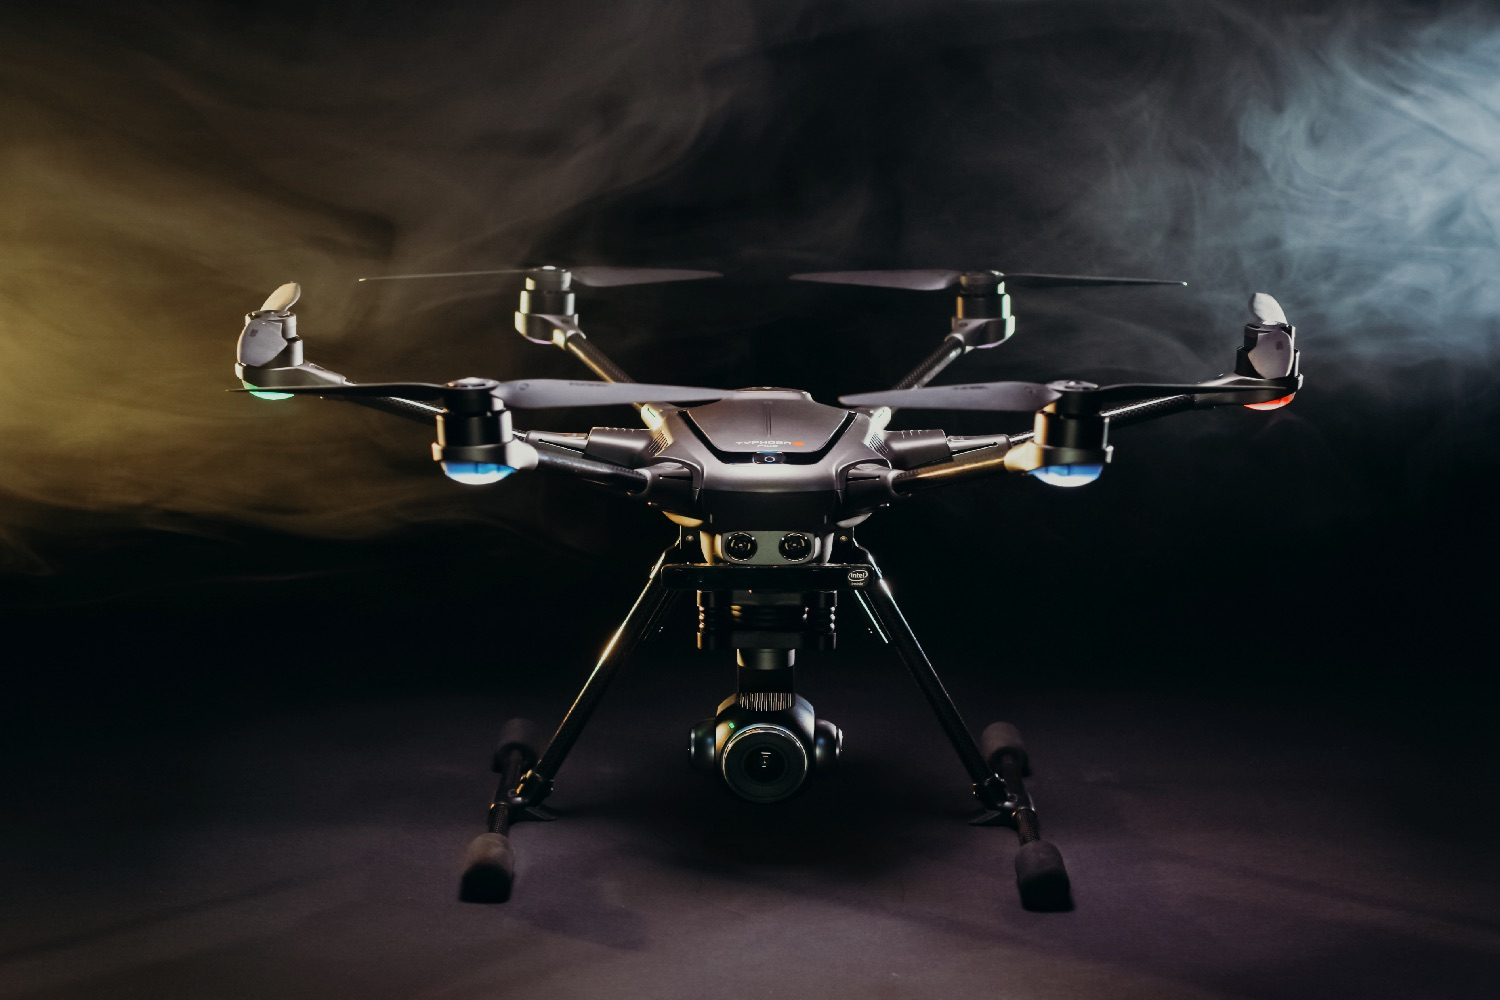 six rotor drone with Yuneec Unveils Three Drones Including 151630933 on Fully assembled kk multicopter control board blackboard v5 5 together with Yuneec Typhoon H480 Hexacopter 4k Camera Rc Drone in addition Chinese Hexacopter Passes Flight And Bombing Tests in addition Agusta Westland Aw609 Tilt Rotor Aircraft Is The Civilian Cousin Of The V 22 Osprey Video 95534 besides Yuneec International Expands  mercial Uav Offerings With All New H520 300386223.